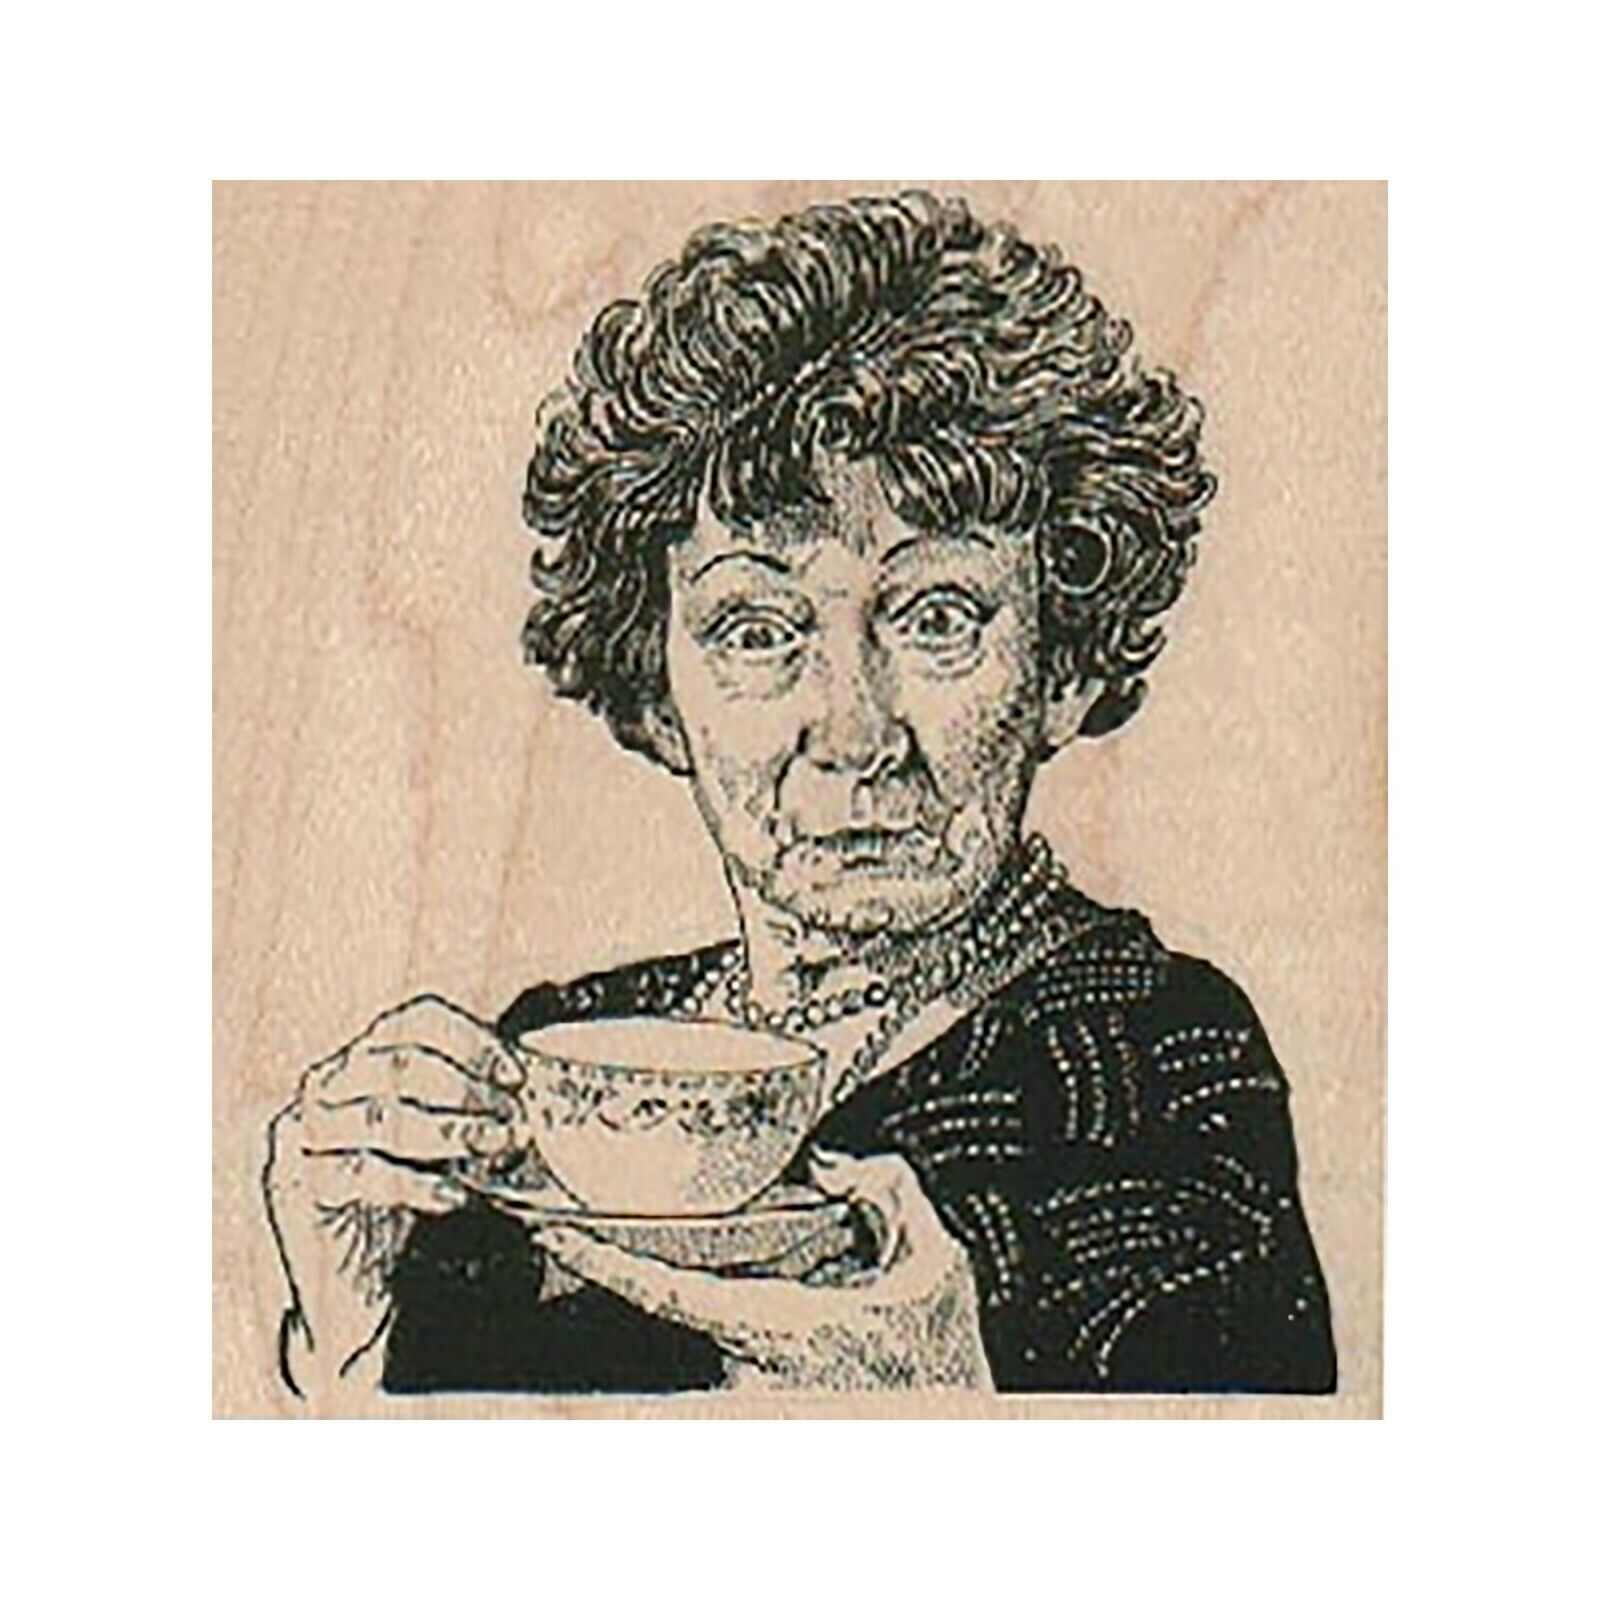 Primary image for Mounted Rubber Stamp, Lady With Tea Cup, Tea Lady, Old Lady, Curious Lady, Woman